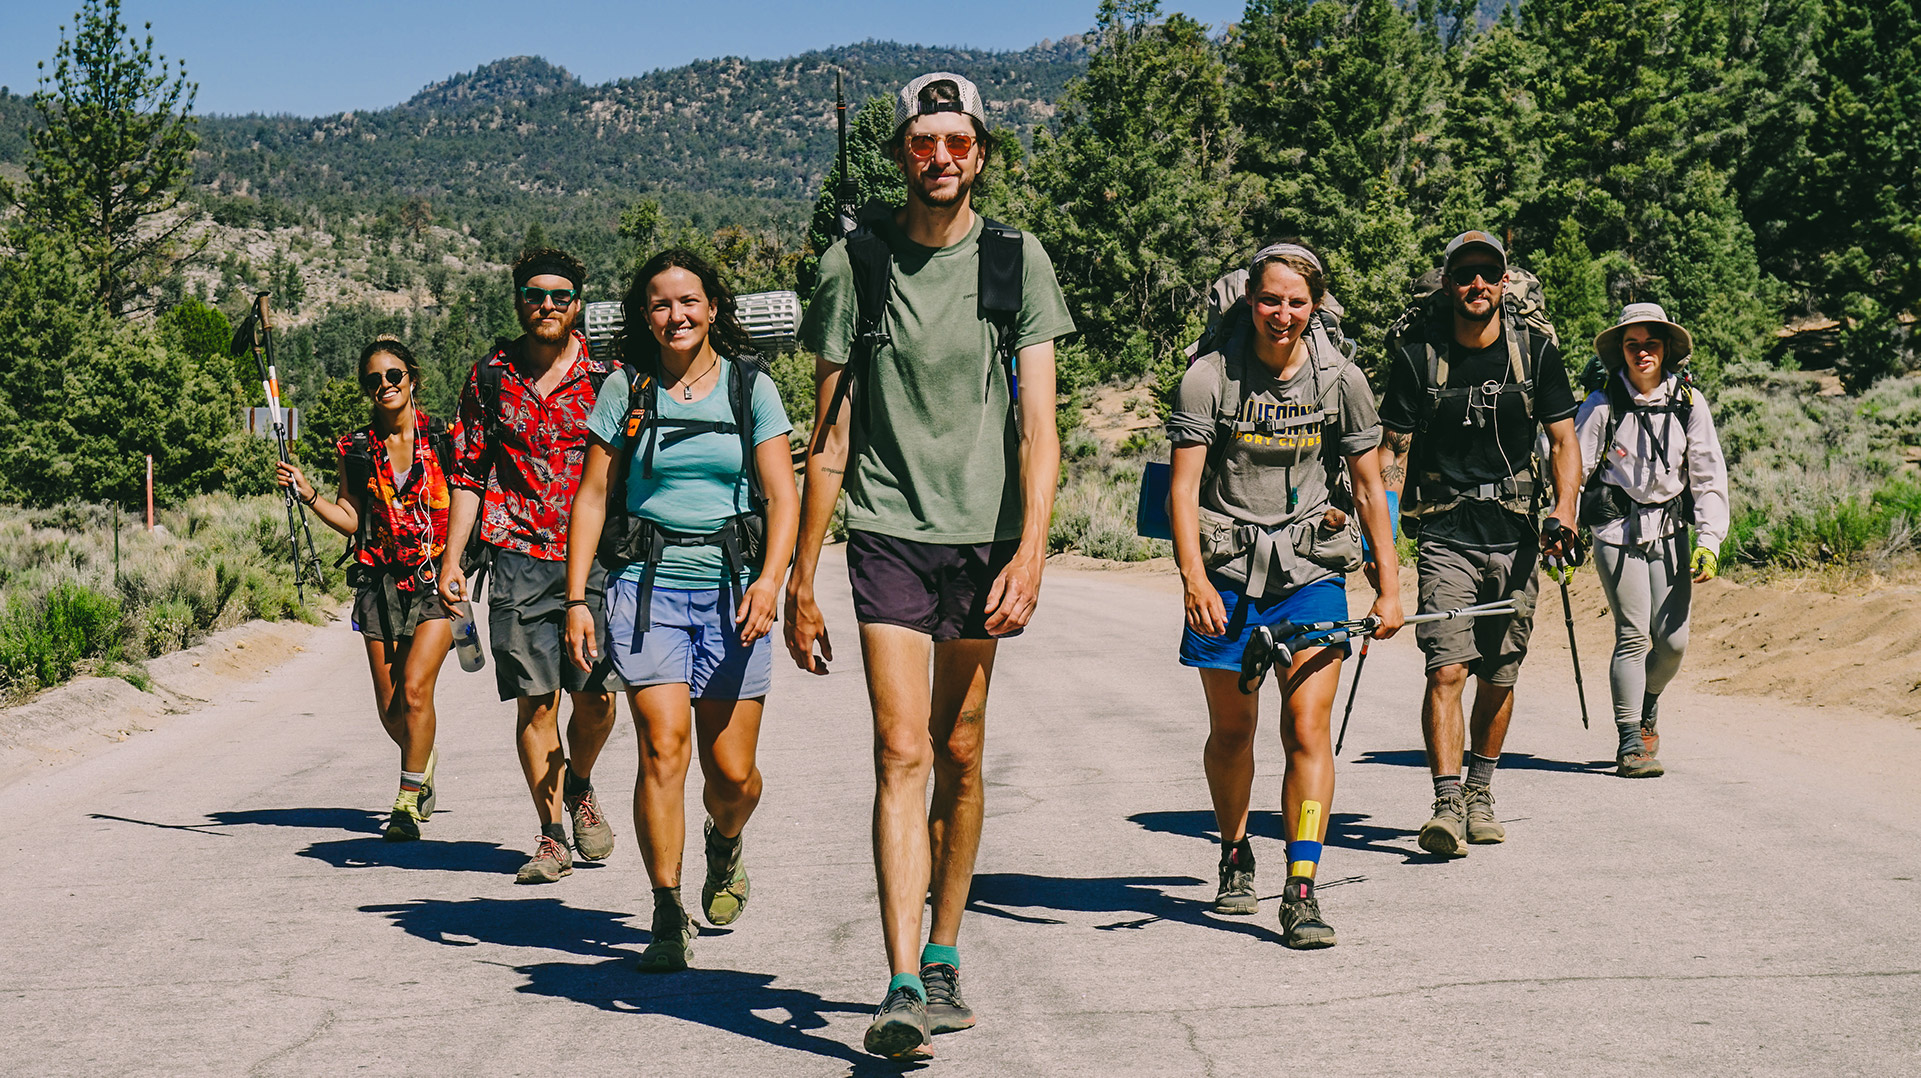 2019 PCT permits thruhikers